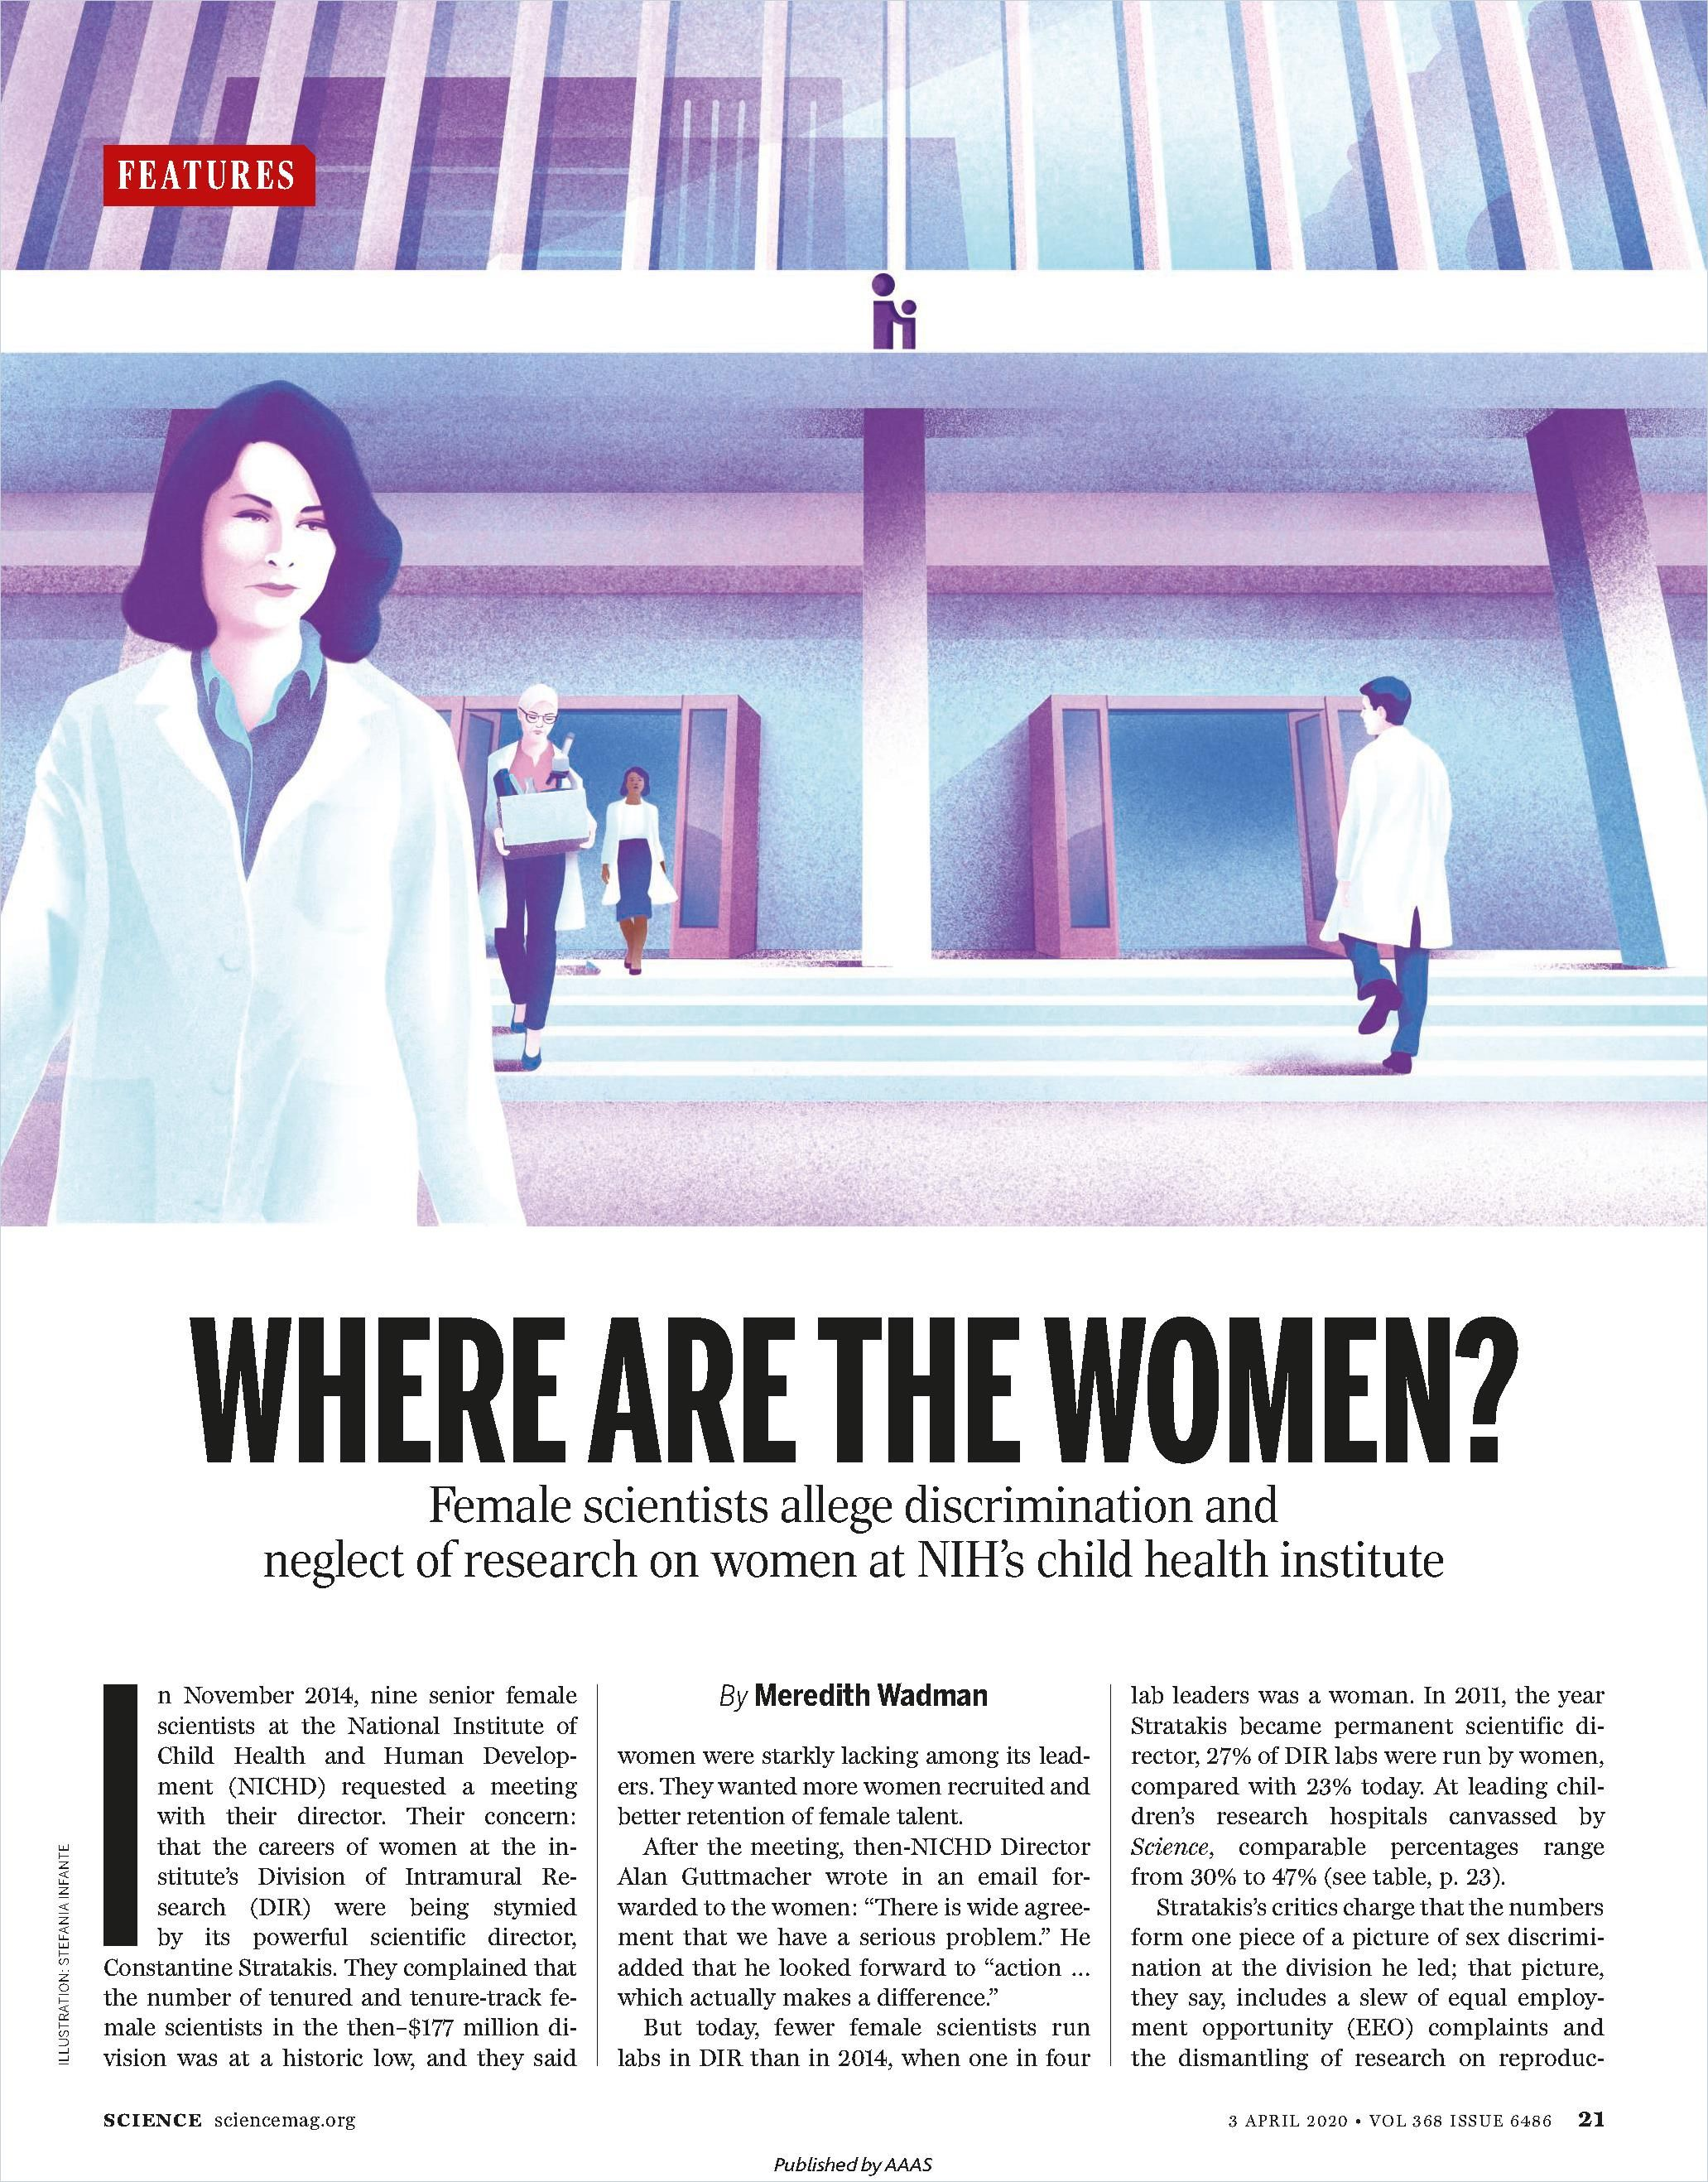 Image of: Where Are the Women?